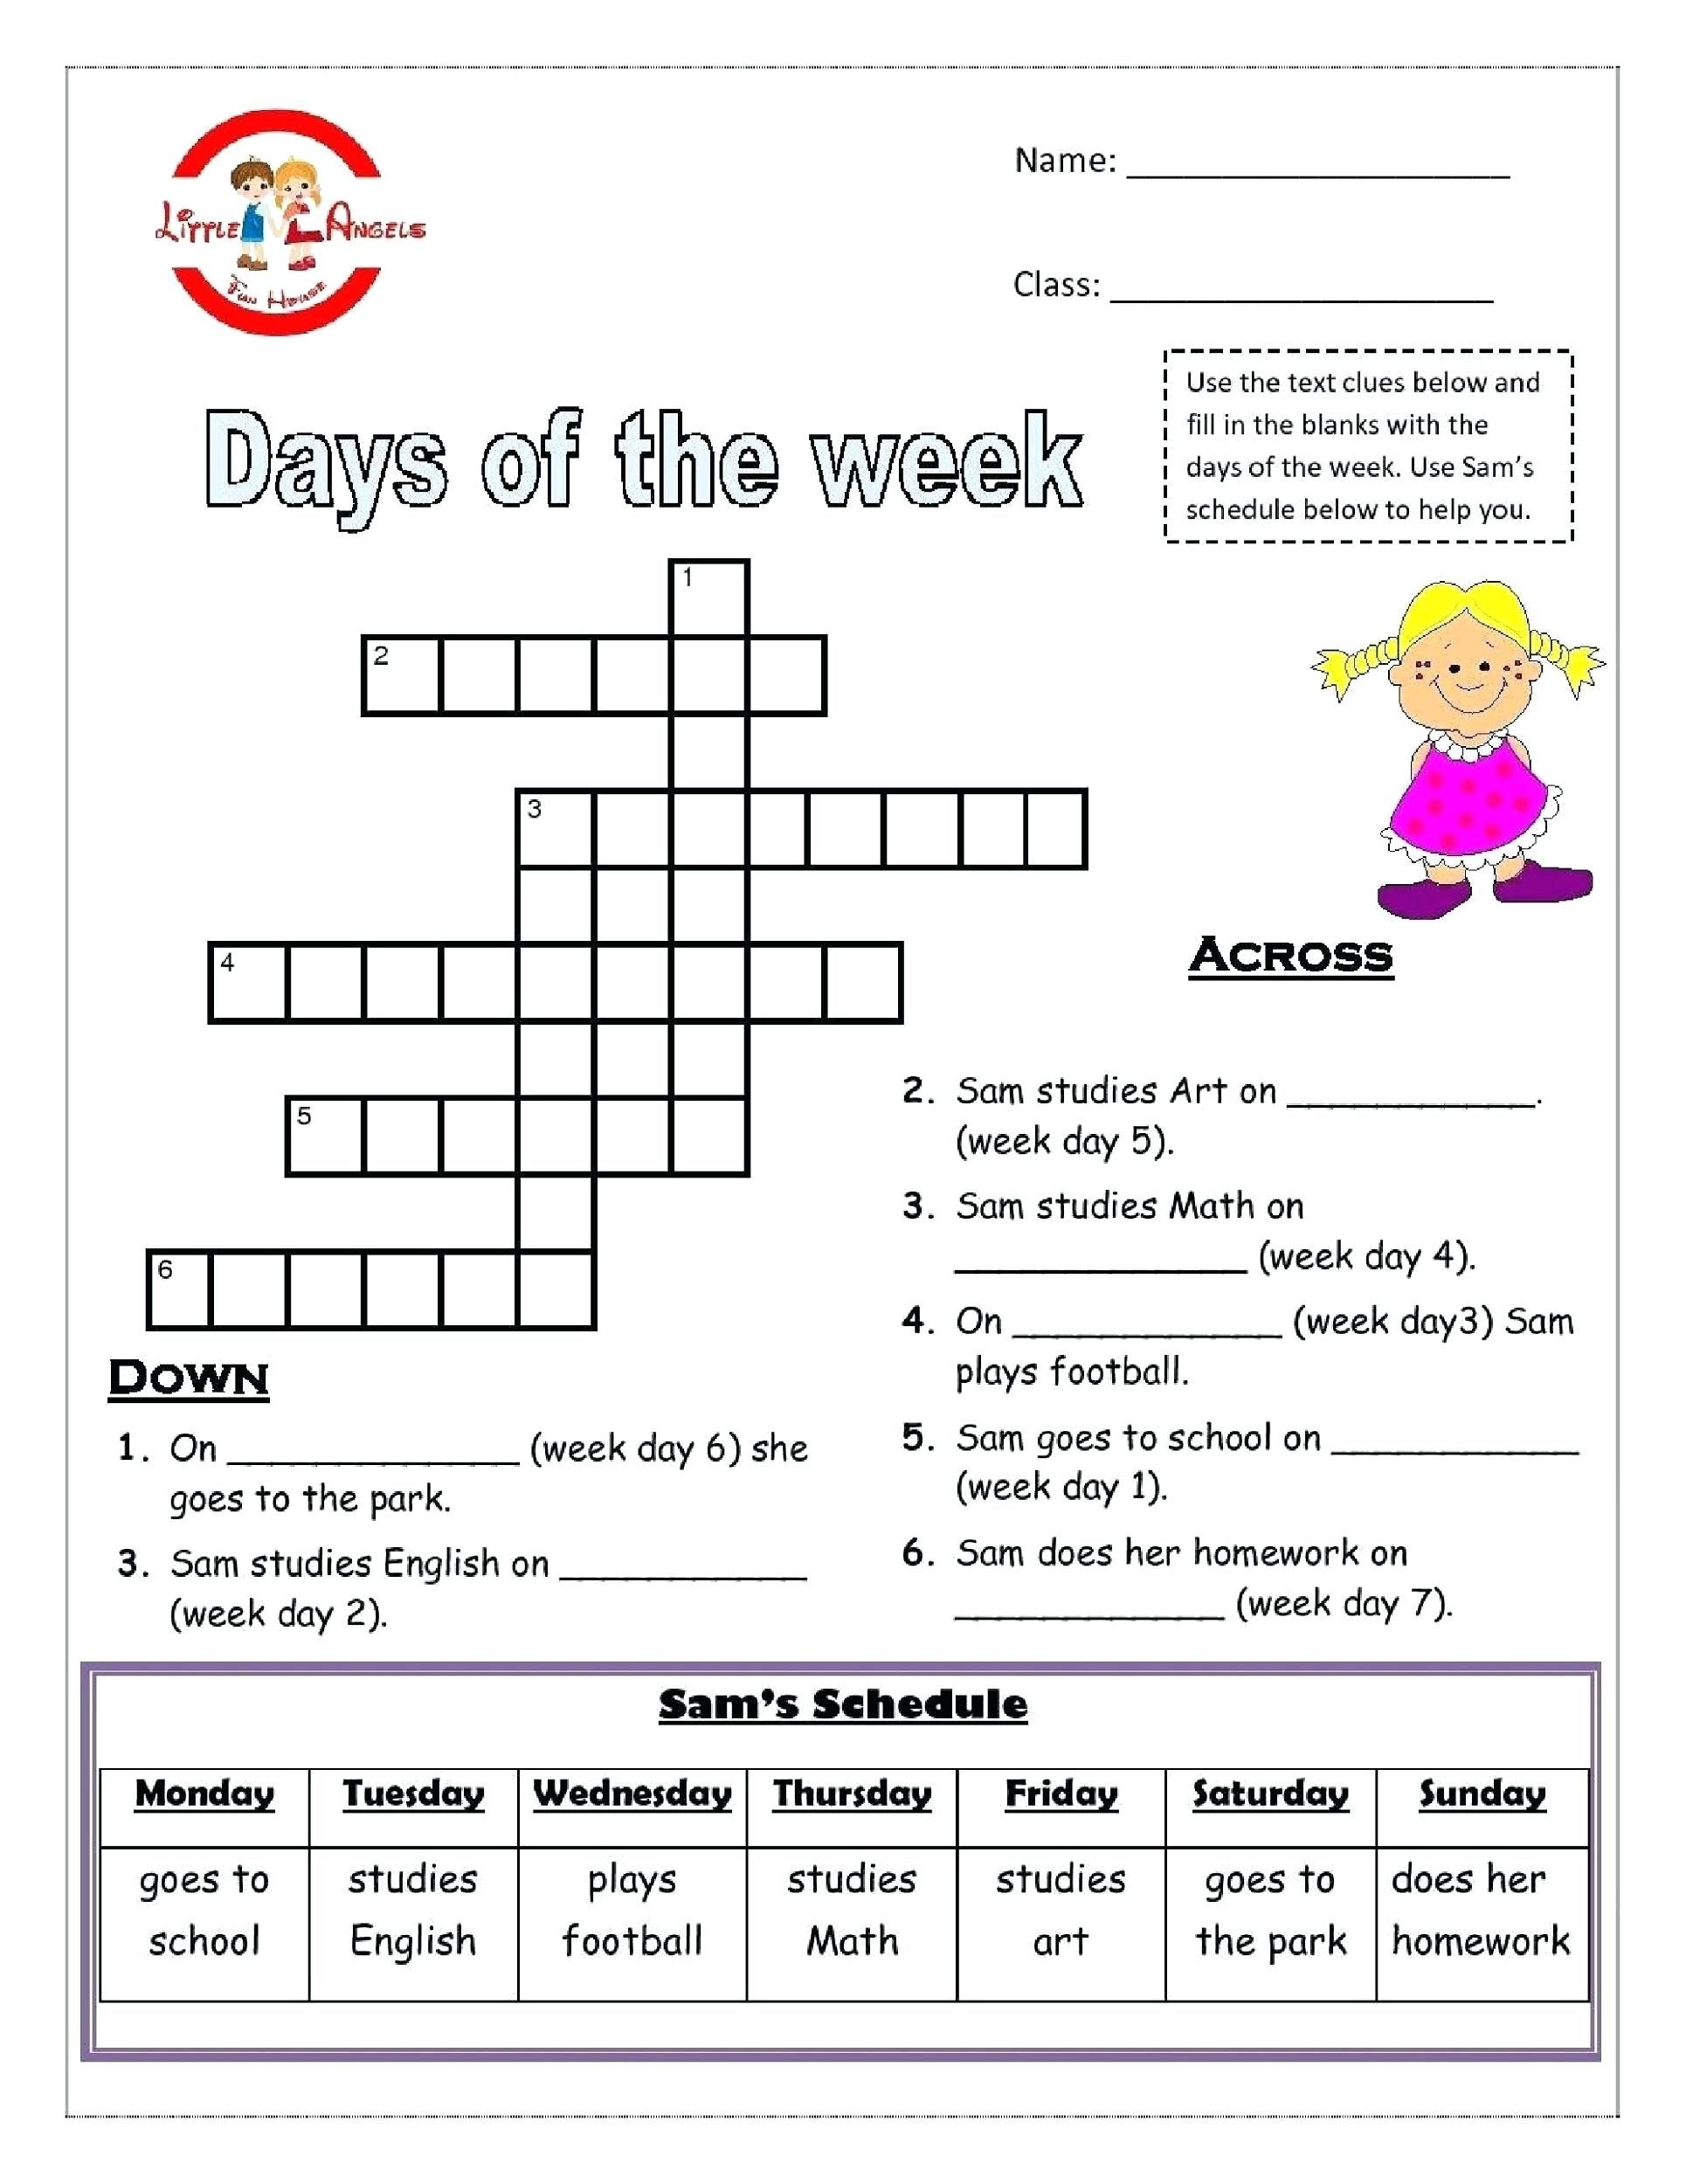 Worksheet Games For Grade 4 | Printable Worksheets and Activities ...